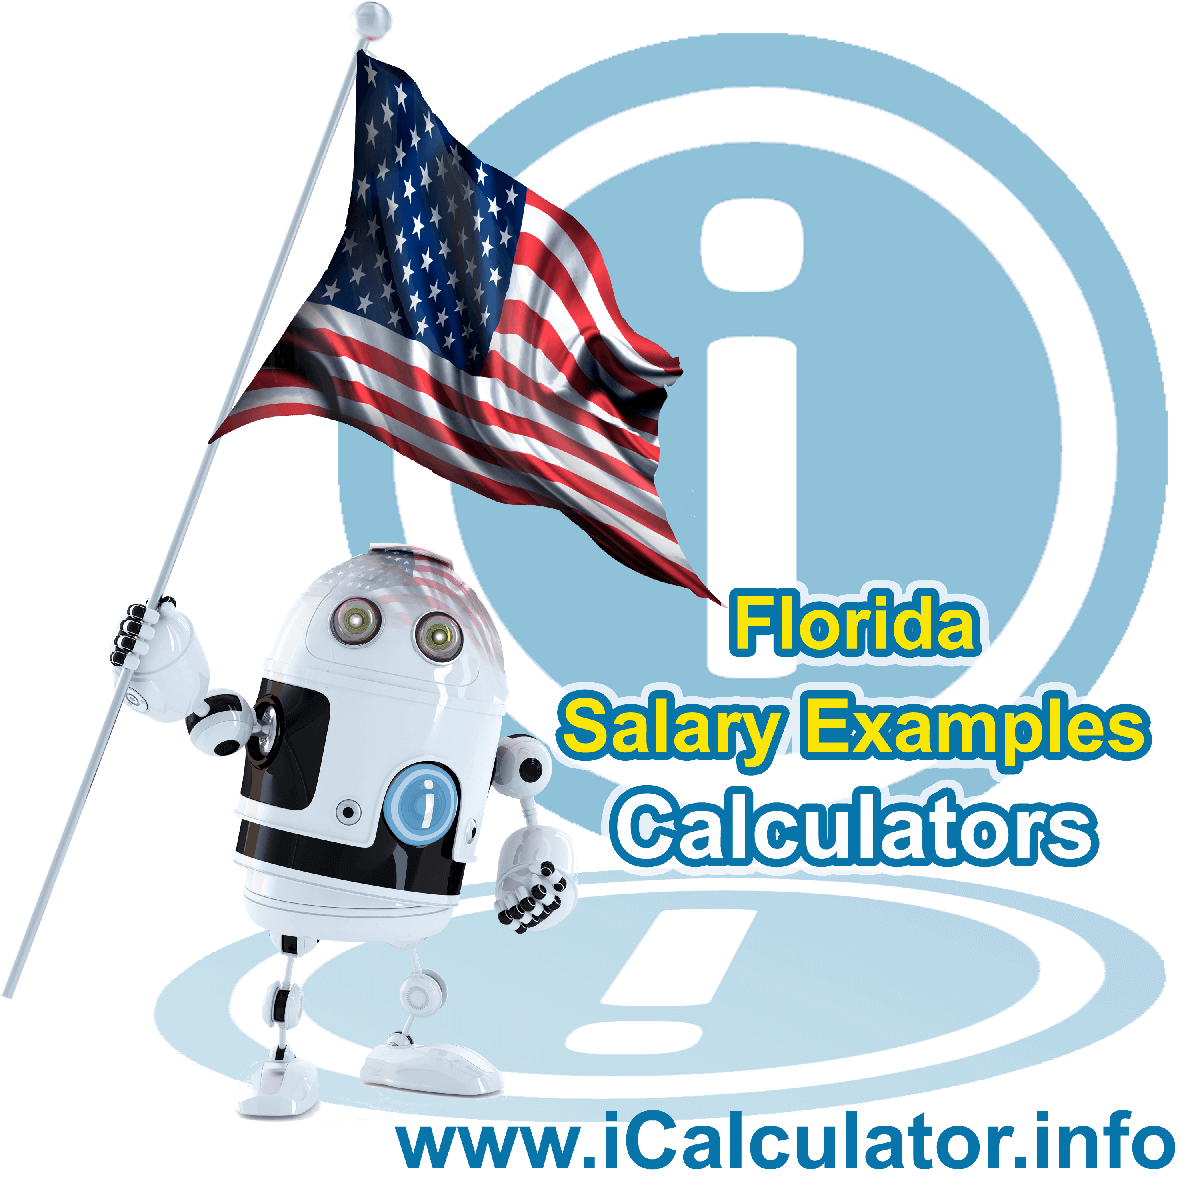 Florida Salary Example for $190,000.00 in 2020 | iCalculator | $190,000.00 salary example for employee and employer paying Florida State tincome taxes. Detailed salary after tax calculation including Florida State Tax, Federal State Tax, Medicare Deductions, Social Security, Capital Gains and other income tax and salary deductions complete with supporting Florida state tax tables